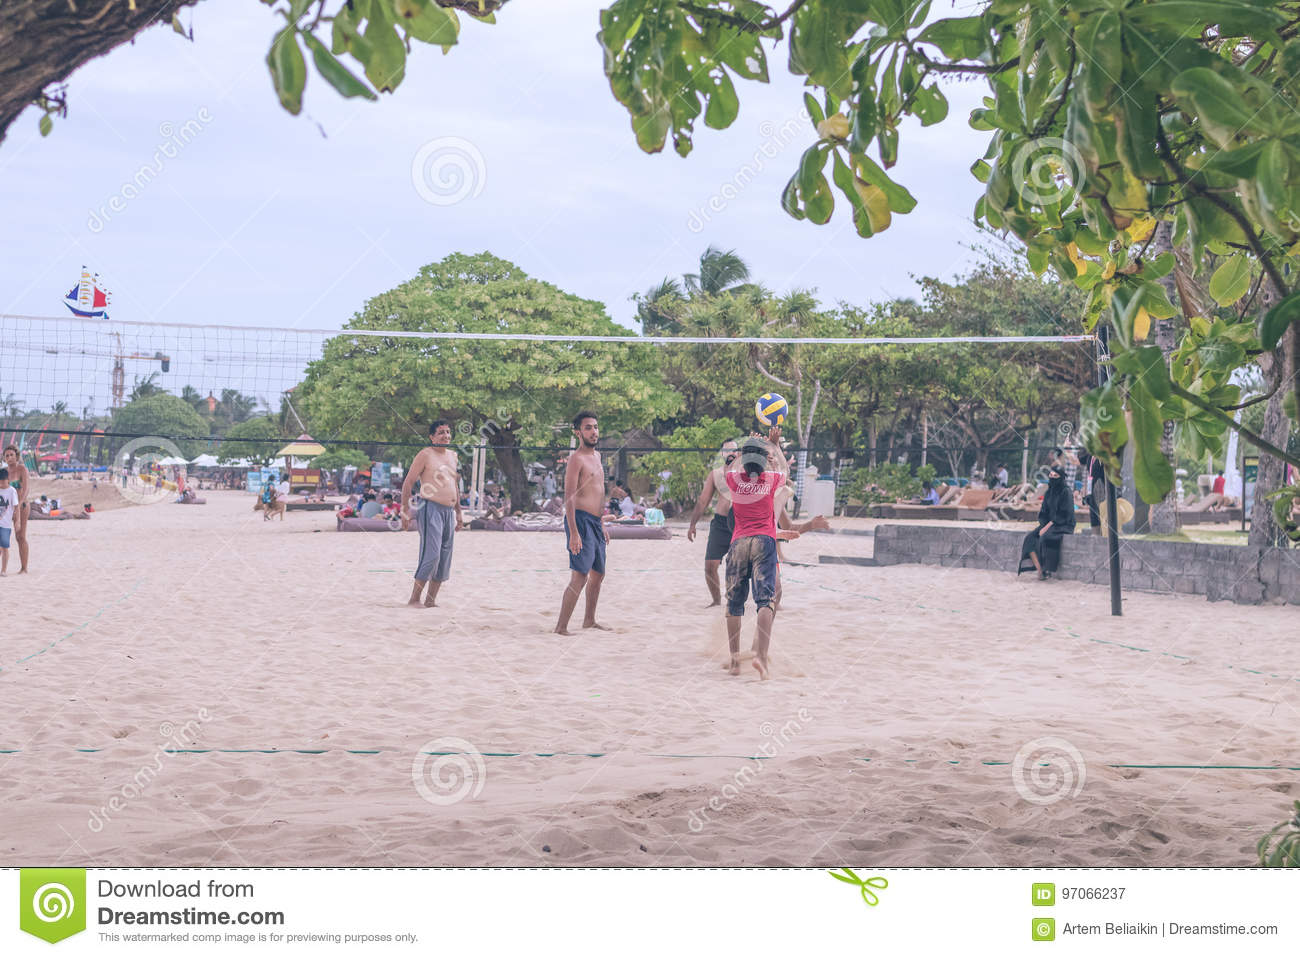 BALI, INDONESIA - JULY 27, 2017: Group of friends playing beach volley - Multi-ethic group of people having fun on the